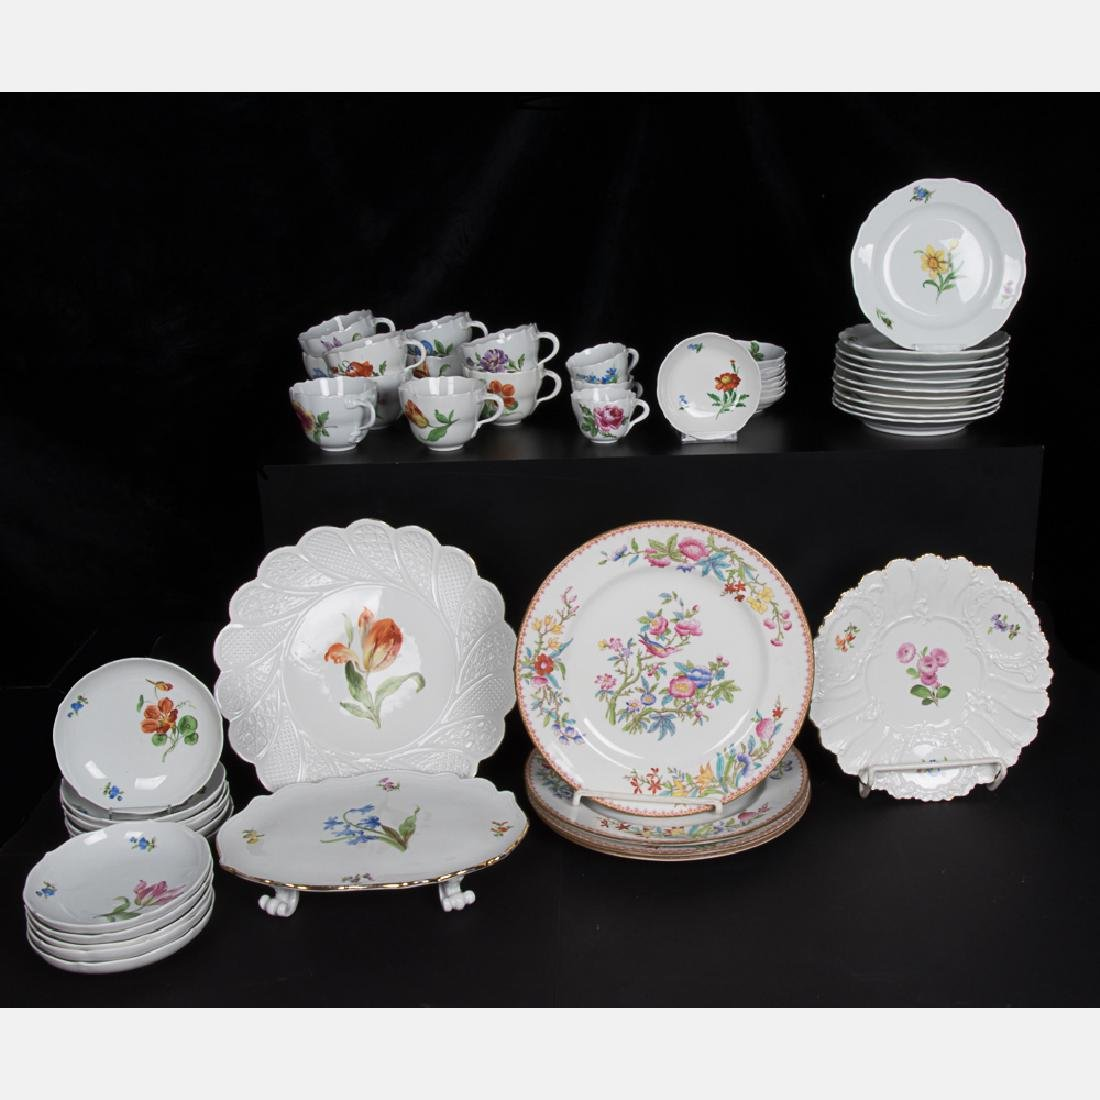 A Partial Set of Meissen Porcelain Cups and Saucers,